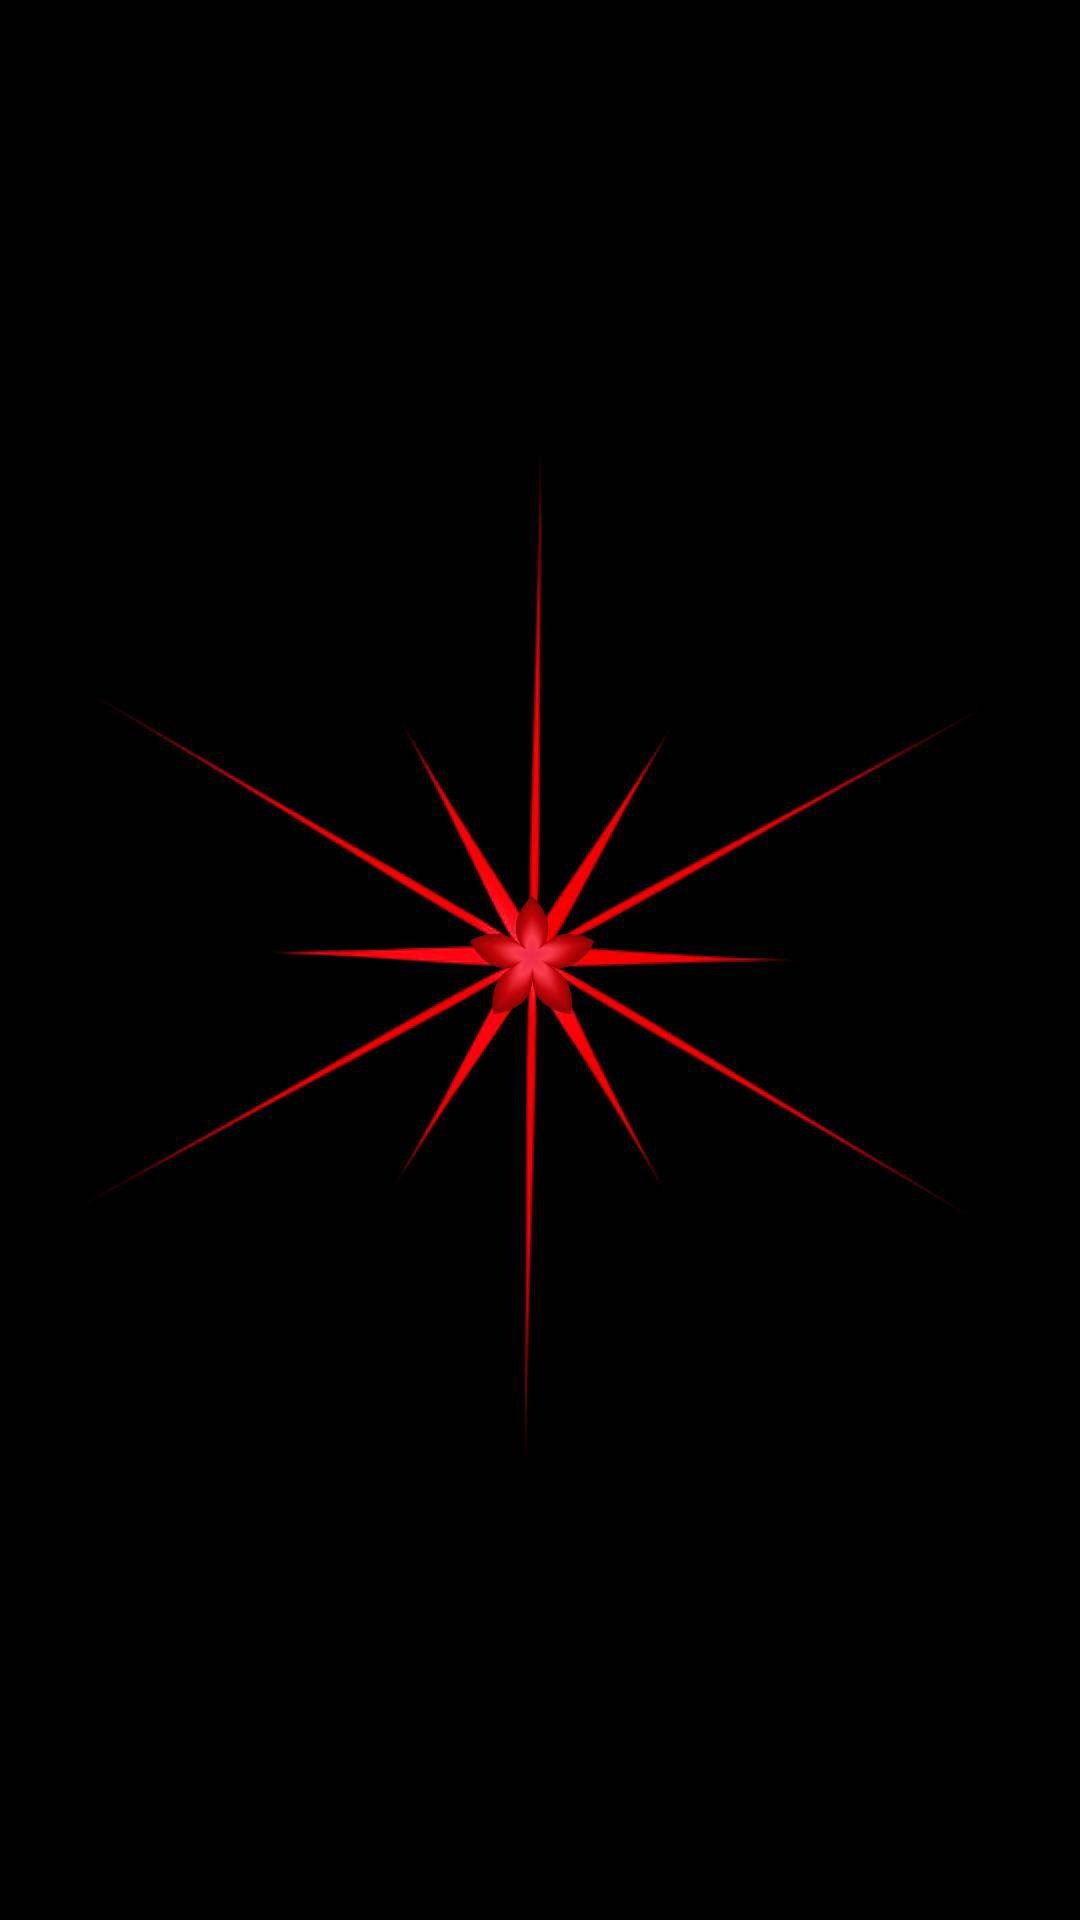 Red Star   Cool wallpapers for phones, Oneplus wallpapers ...